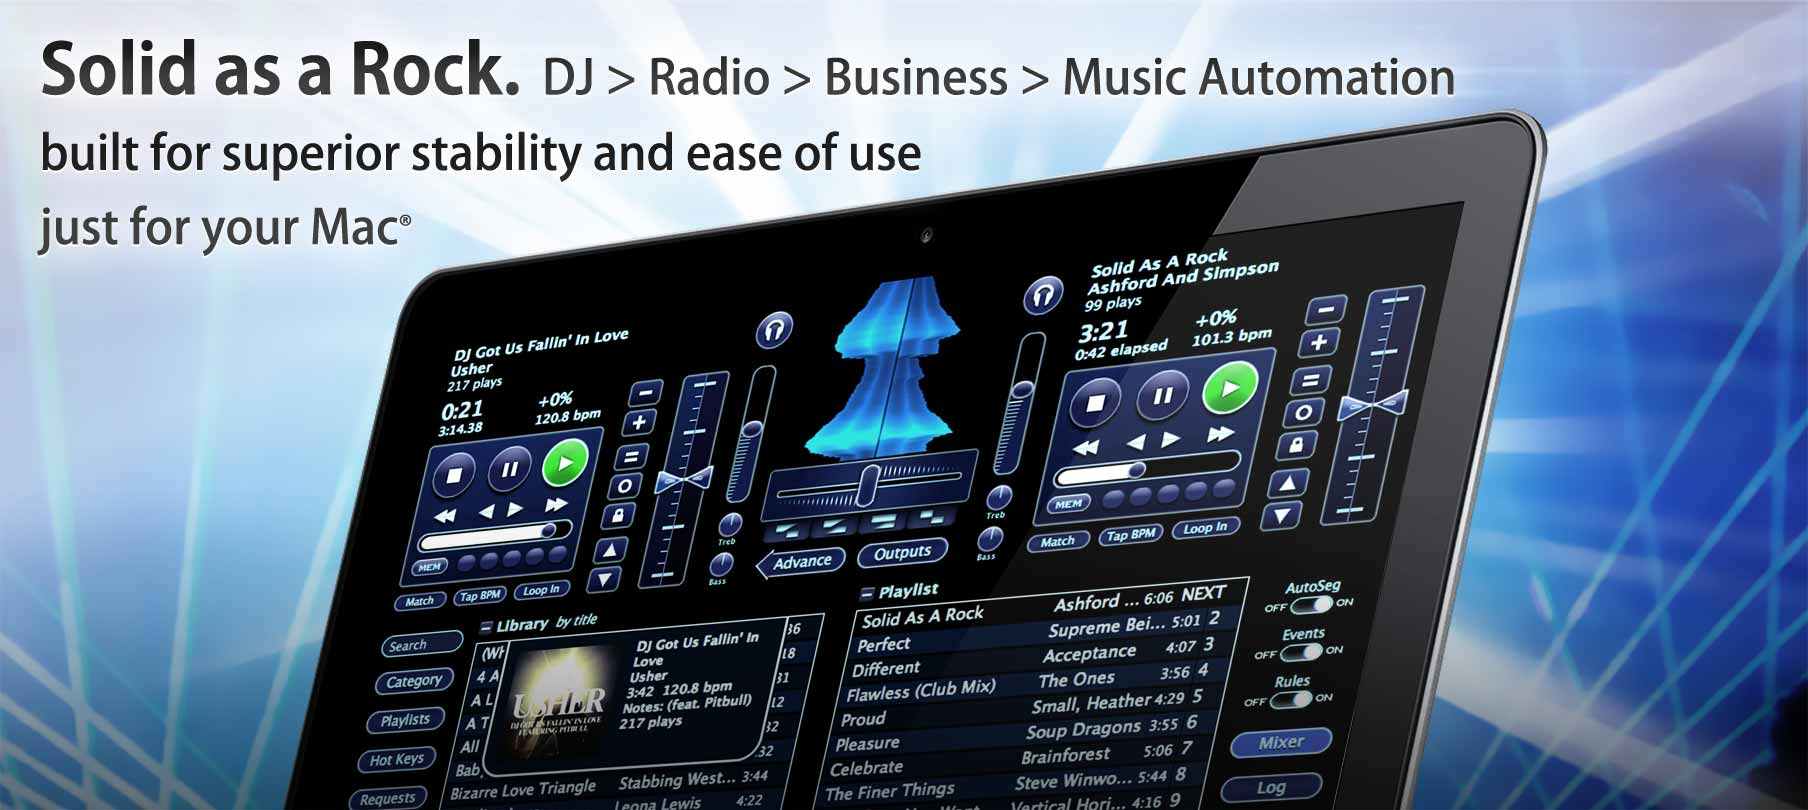 Solid as a Rock. DJ > Radio > Business > Music Automation Software built for superior stability and ease of use just for your Mac® featuring wave views, ambient video, rules, events, requests, and elegant library management.